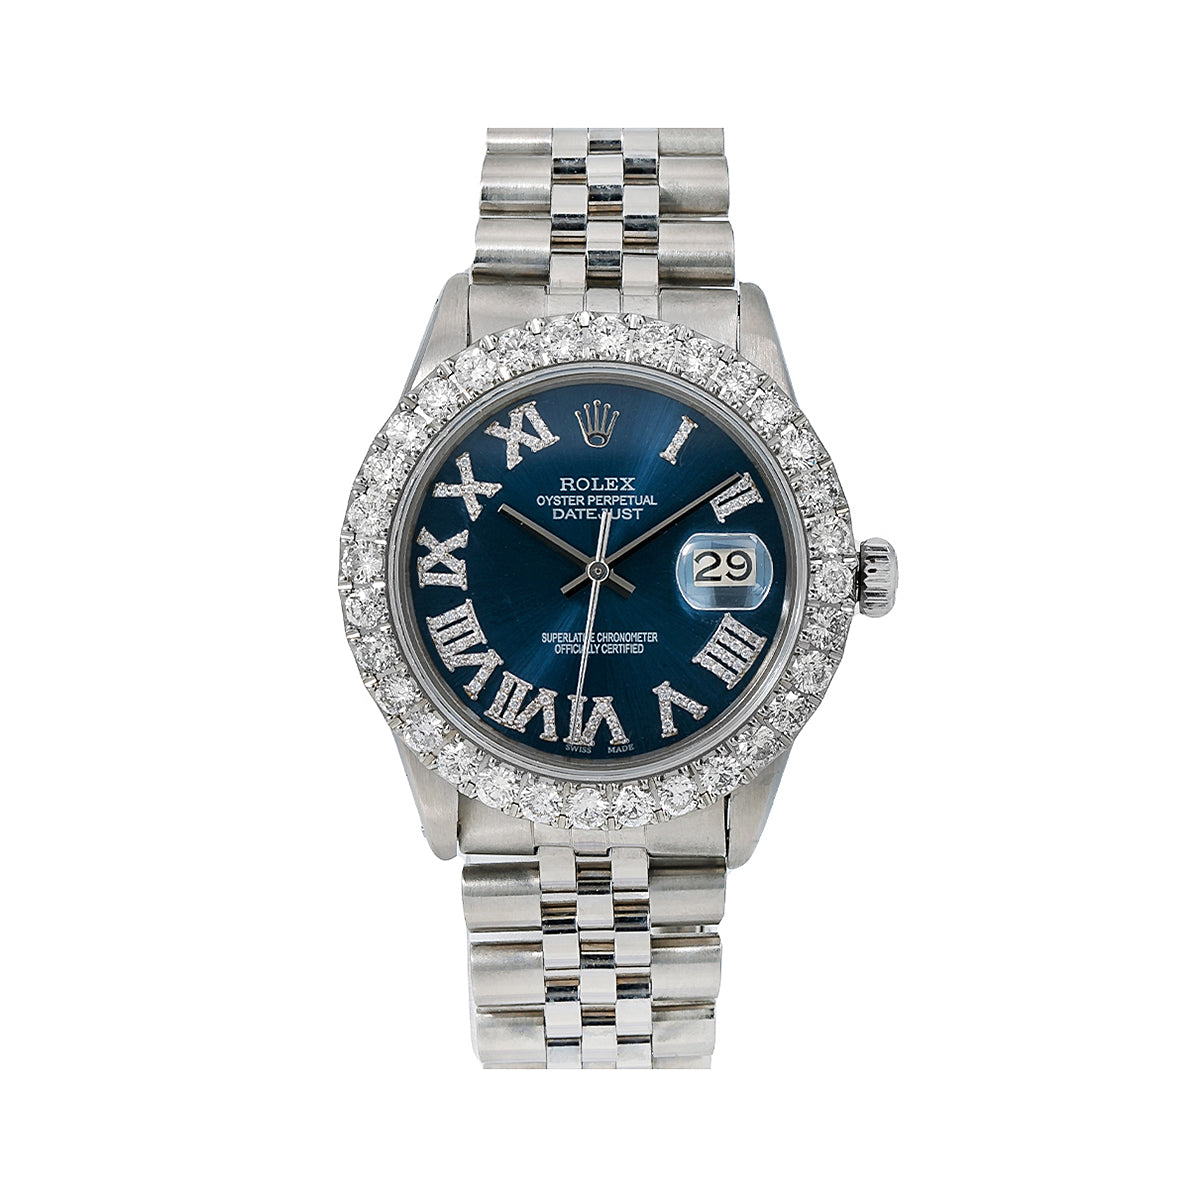 Rolex Datejust 16030 36MM Blue Diamond Dial With 3.25 CT Diamonds